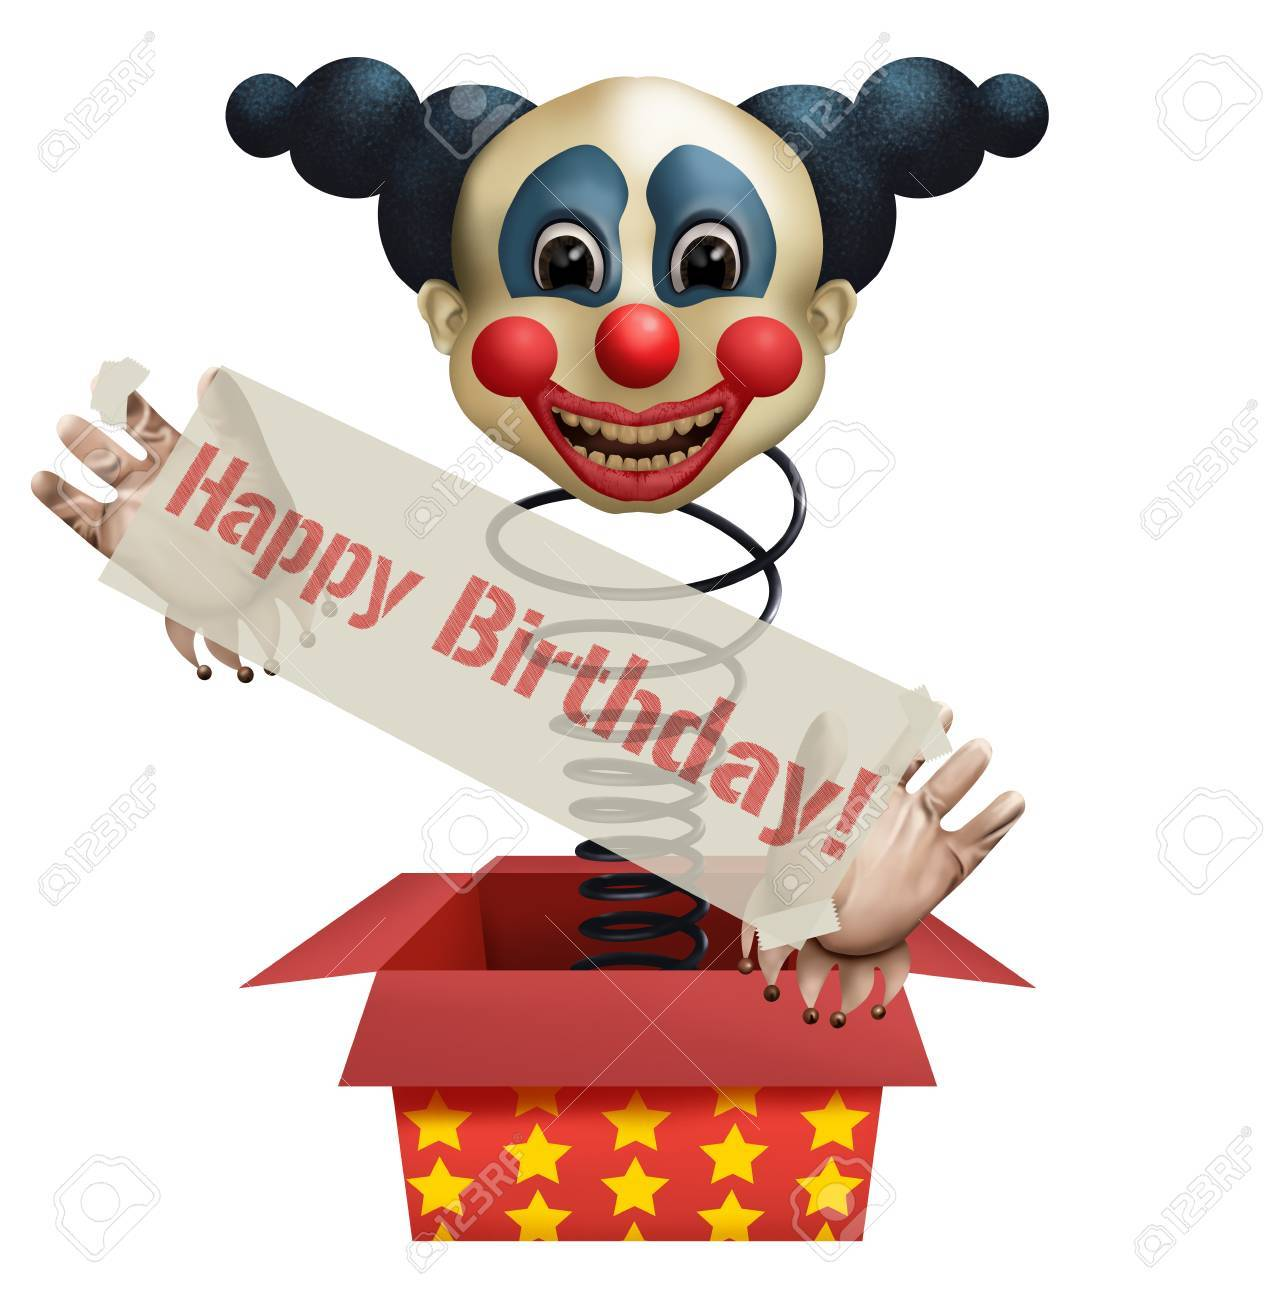 Funny Clown Wish You Happy Birthday Stock Photo Picture And Royalty Free Image Image 70195816